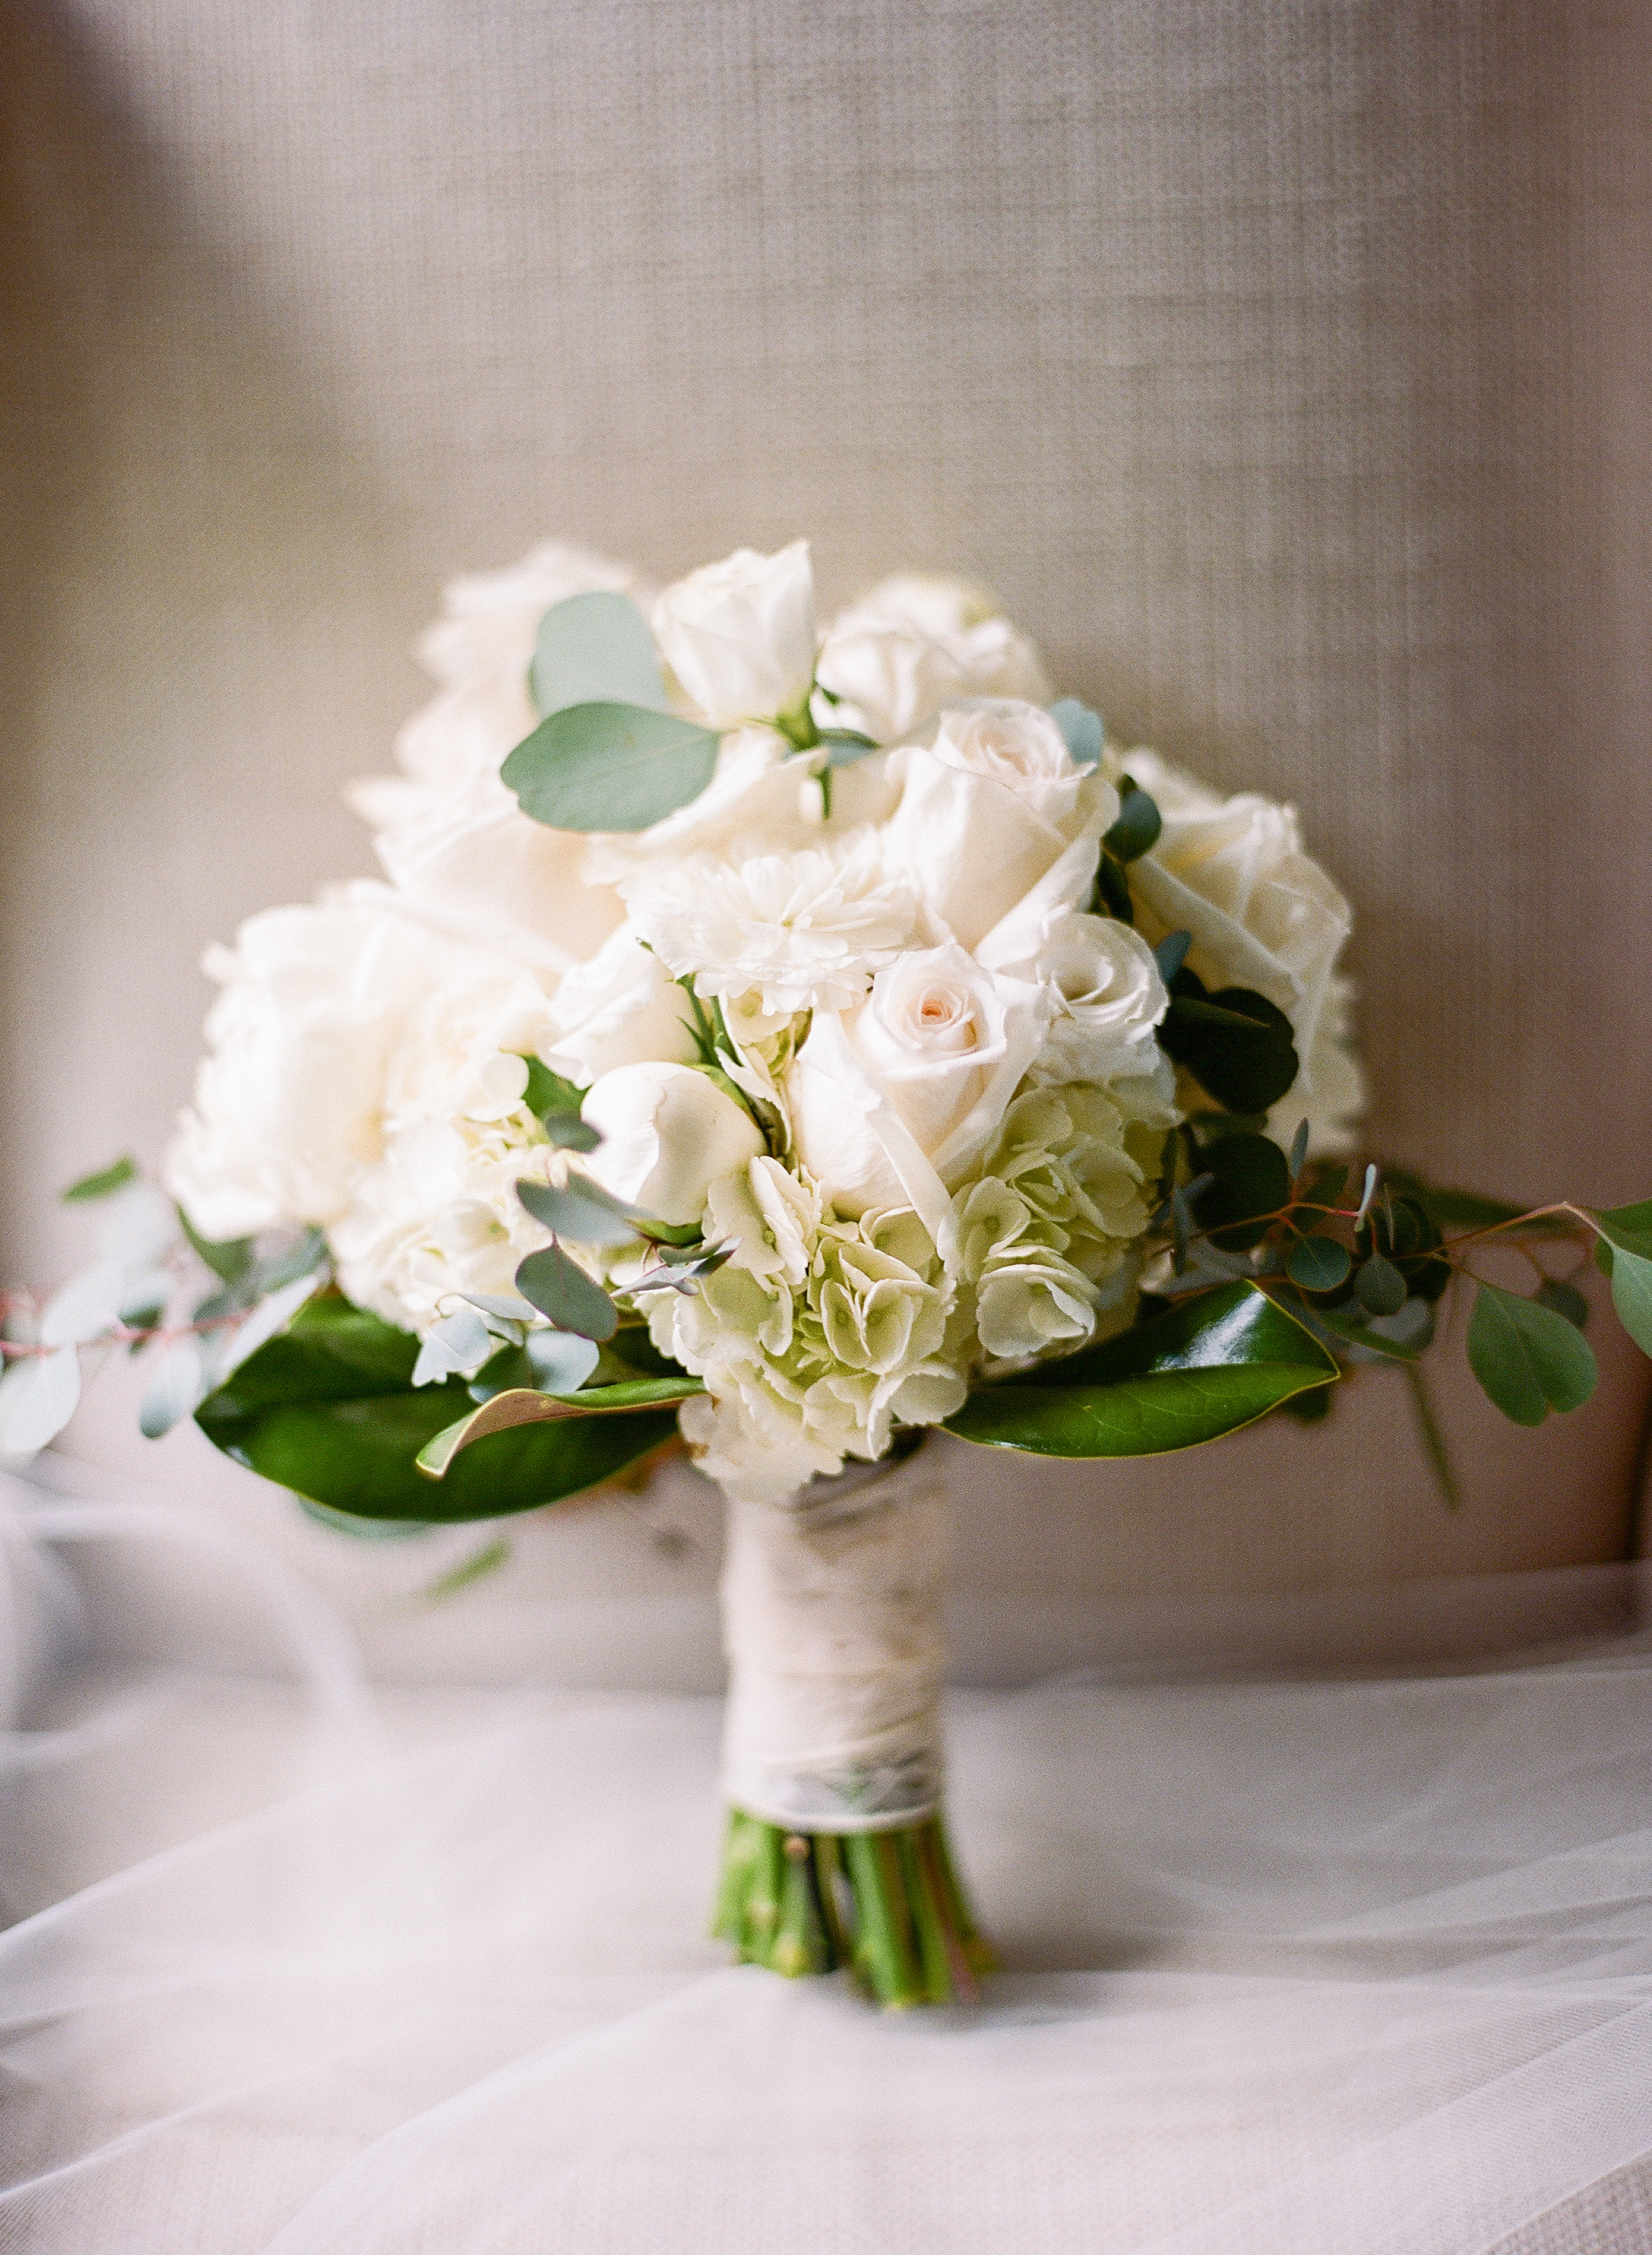 Southern Fete, Southern Wedding, Flowers by Rodney, Catherine Guidry Photography, White and Green Flower Bouquet